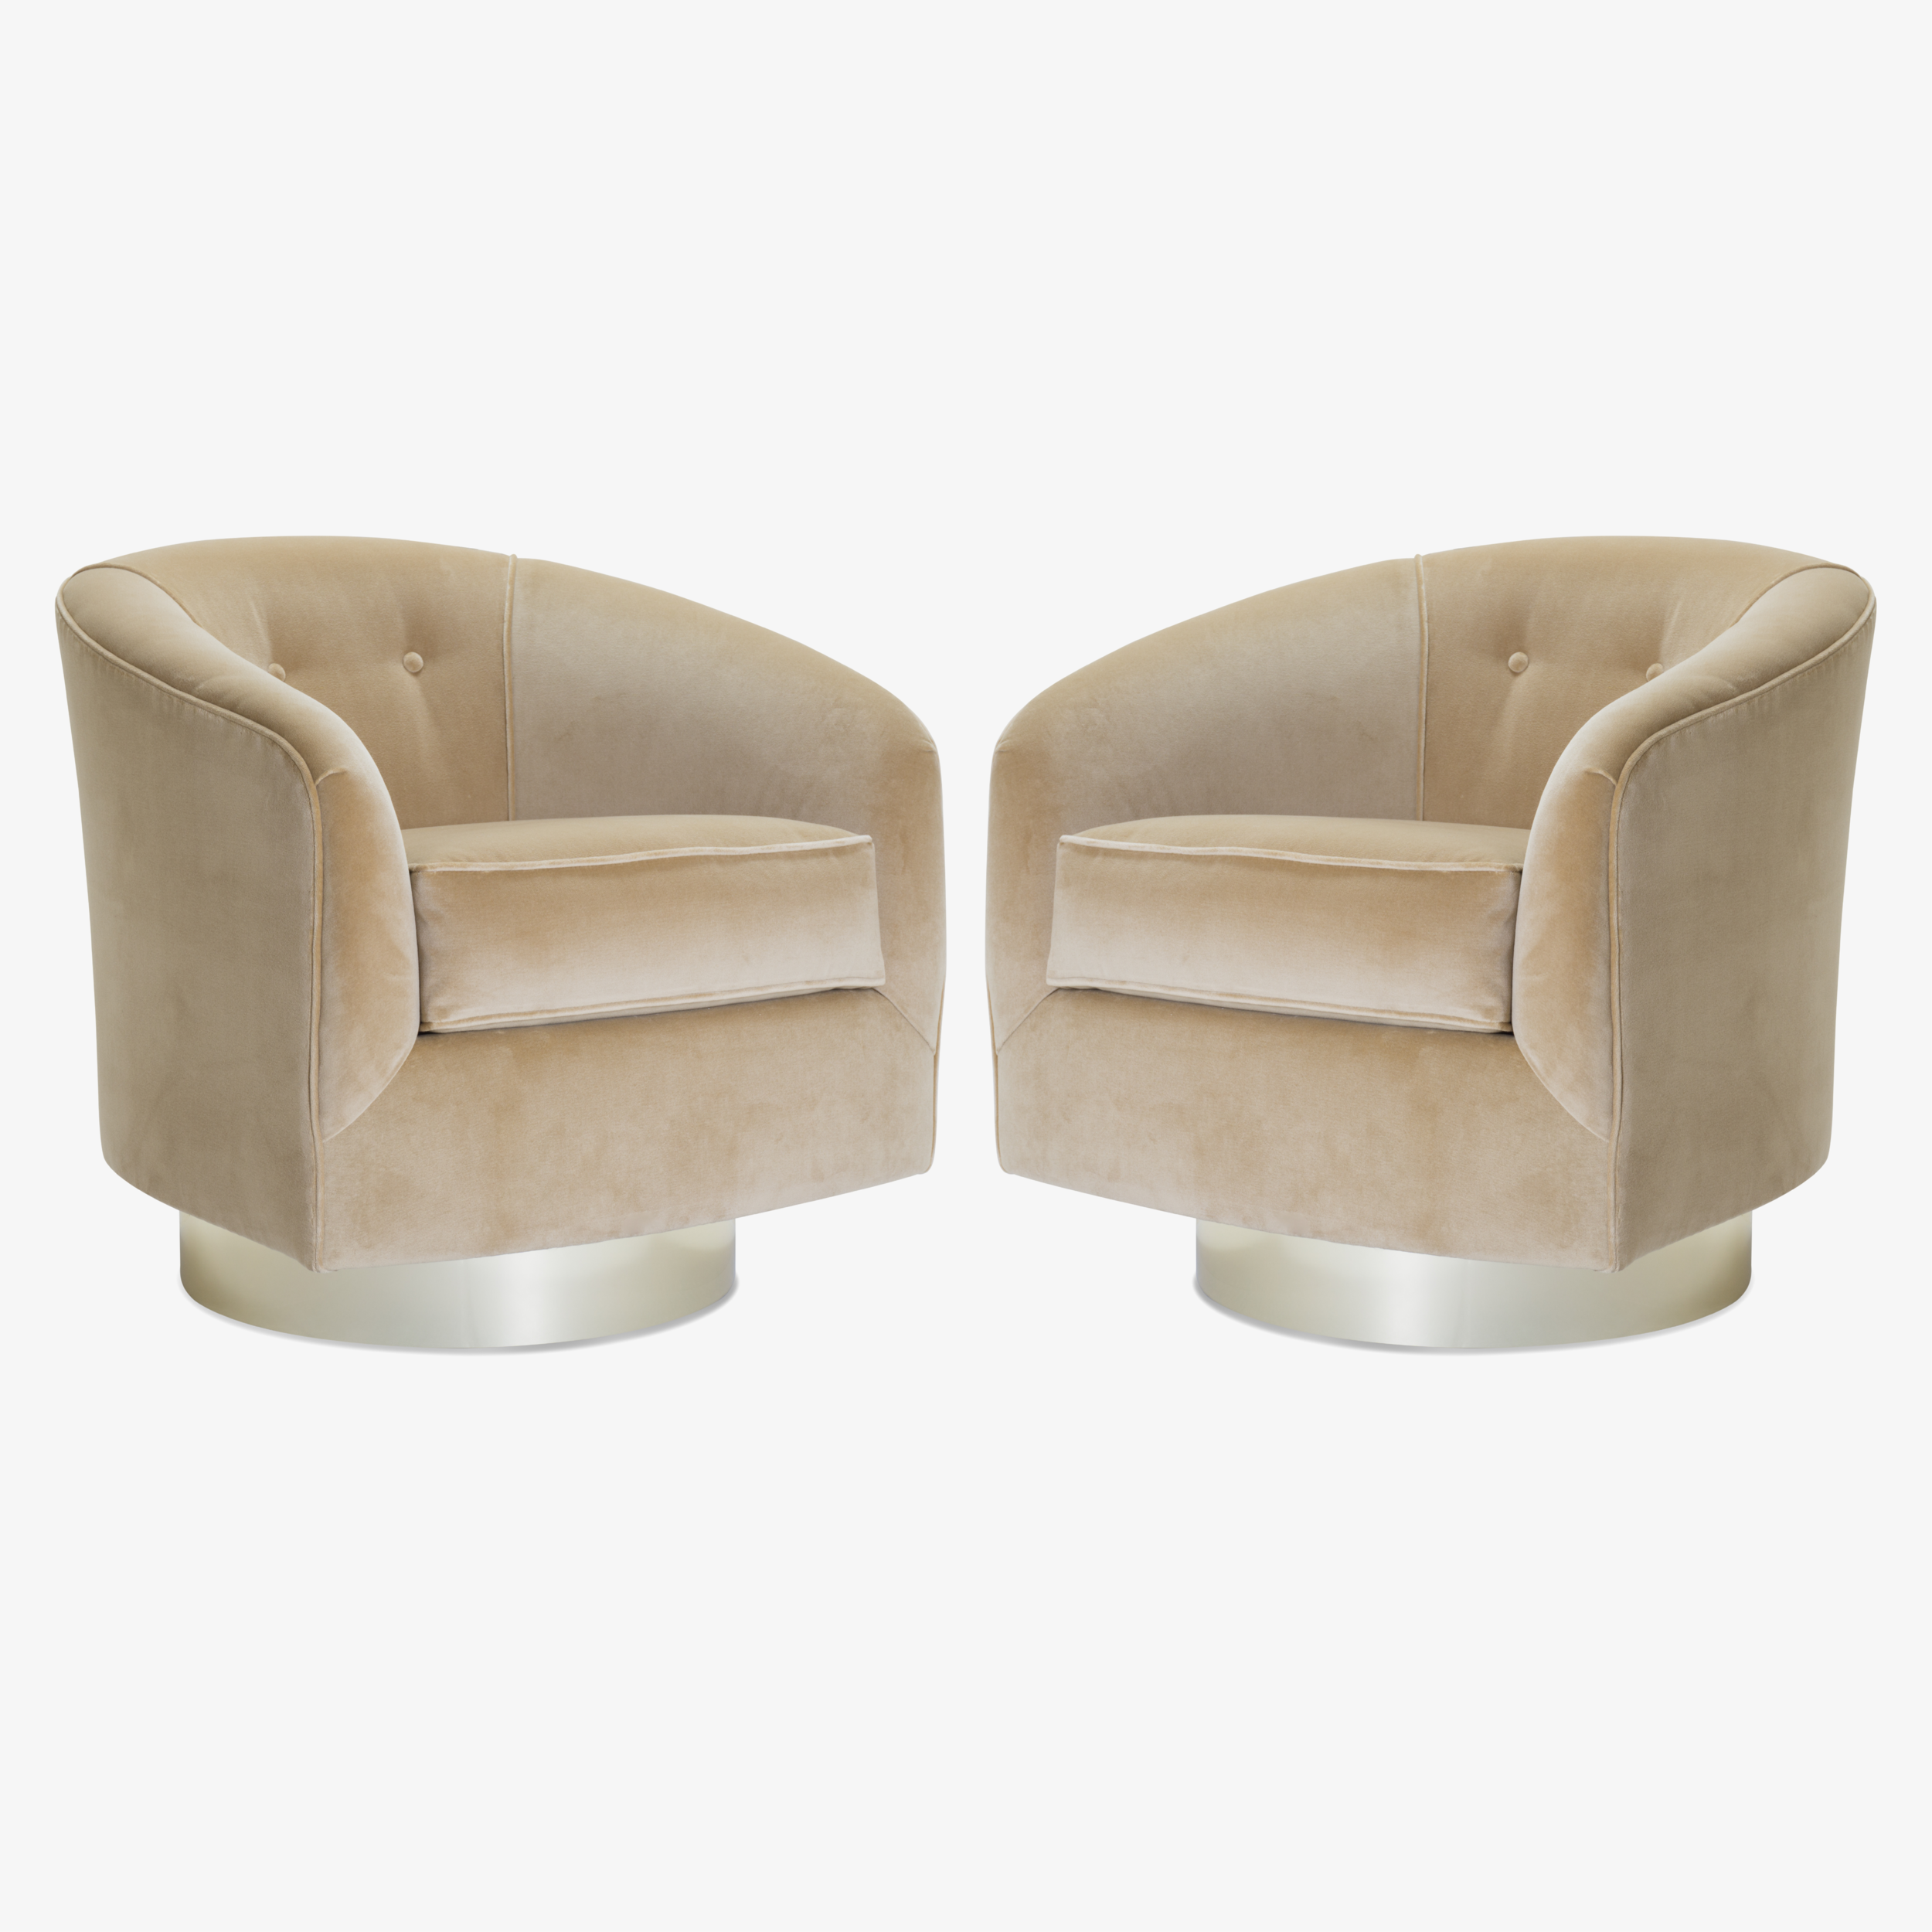 Swivel Tub Chairs with Brass Bases in Camel Velvet2.png